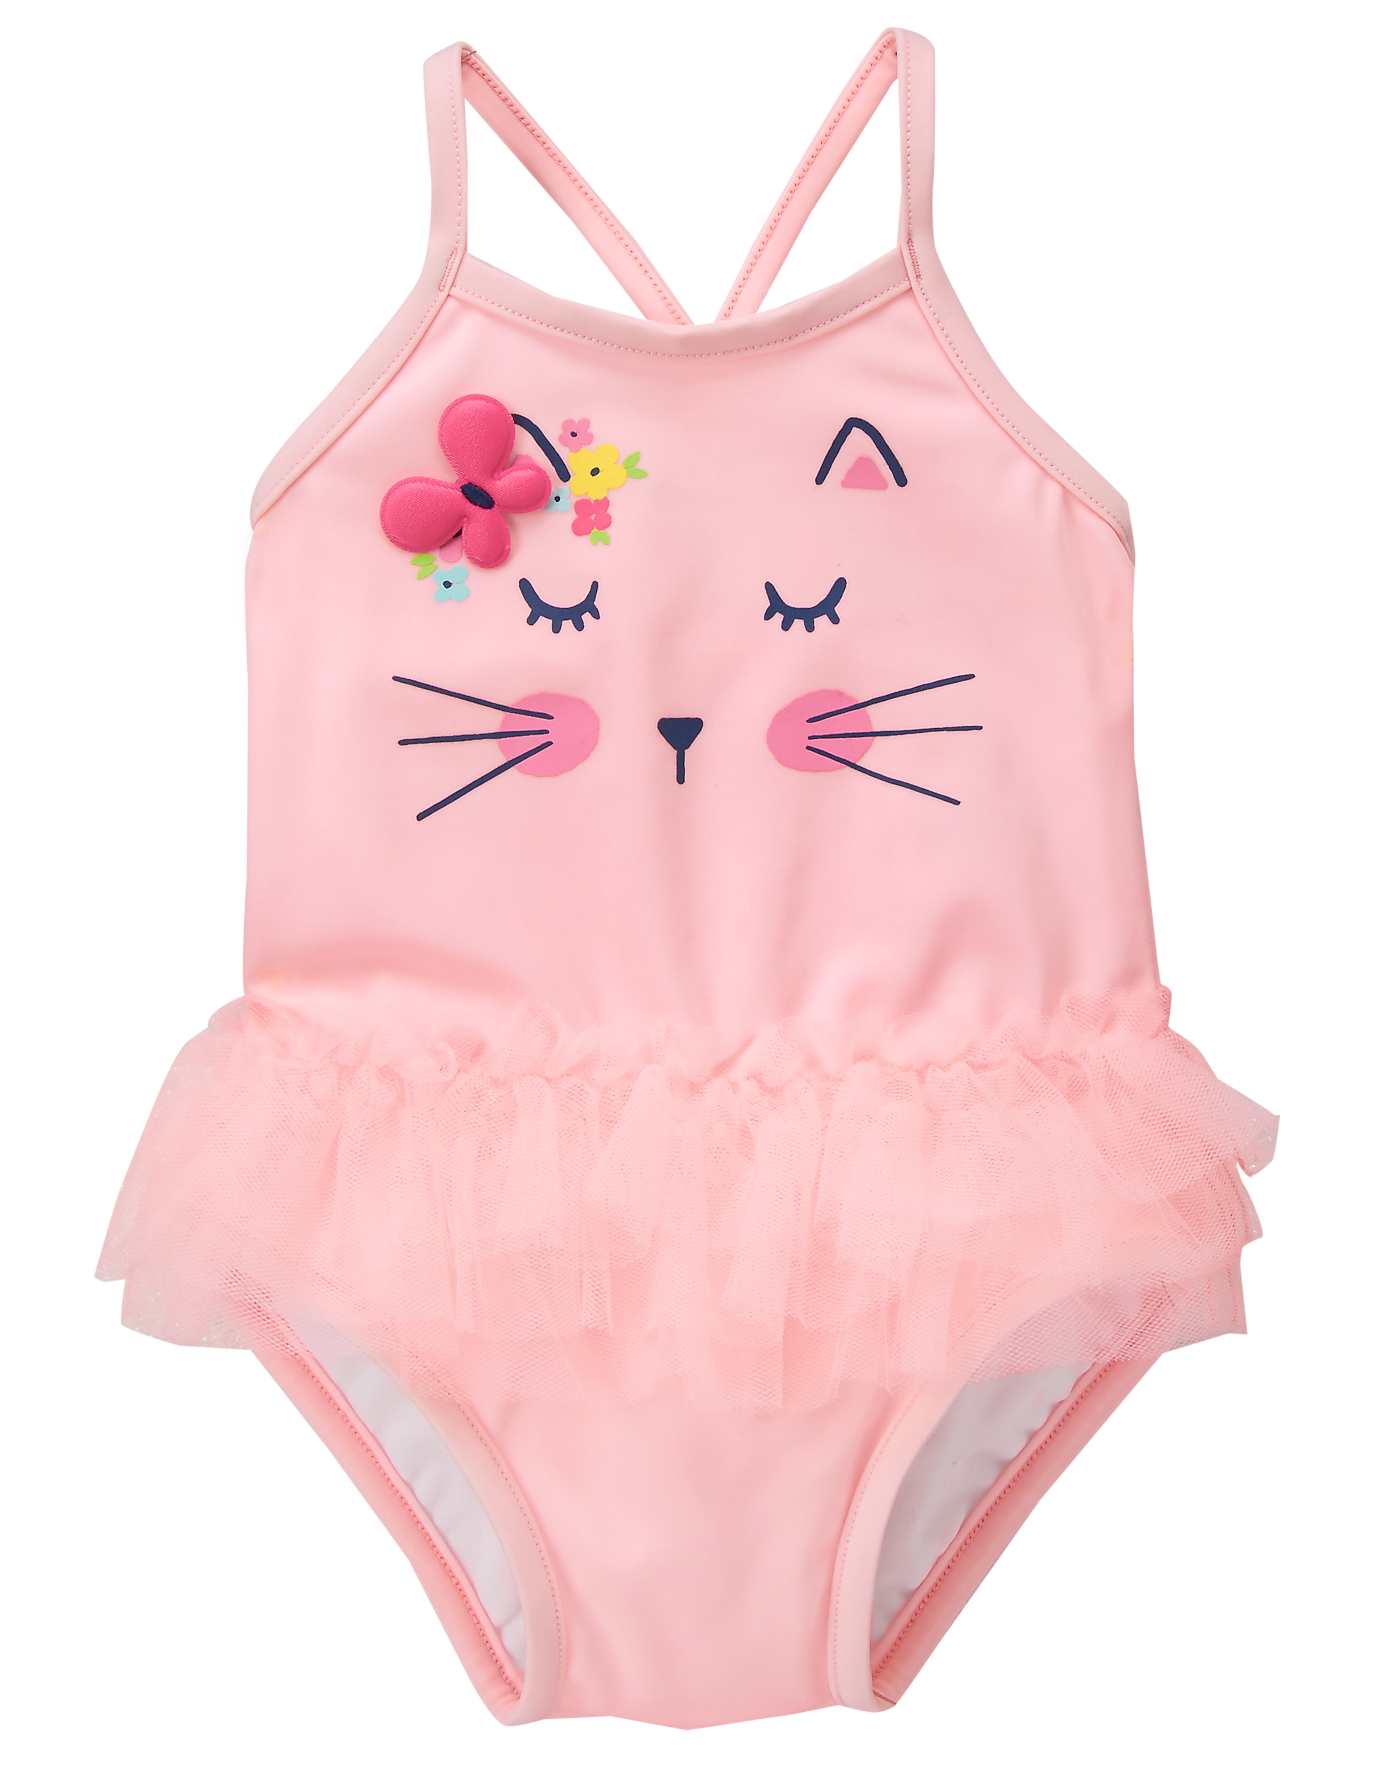 0be996b8d2425 Kitty 1-Piece Swimsuit. Kitty 1-Piece Swimsuit Baby Outfits Newborn,  Newborn Toys, Toddler Girls ...